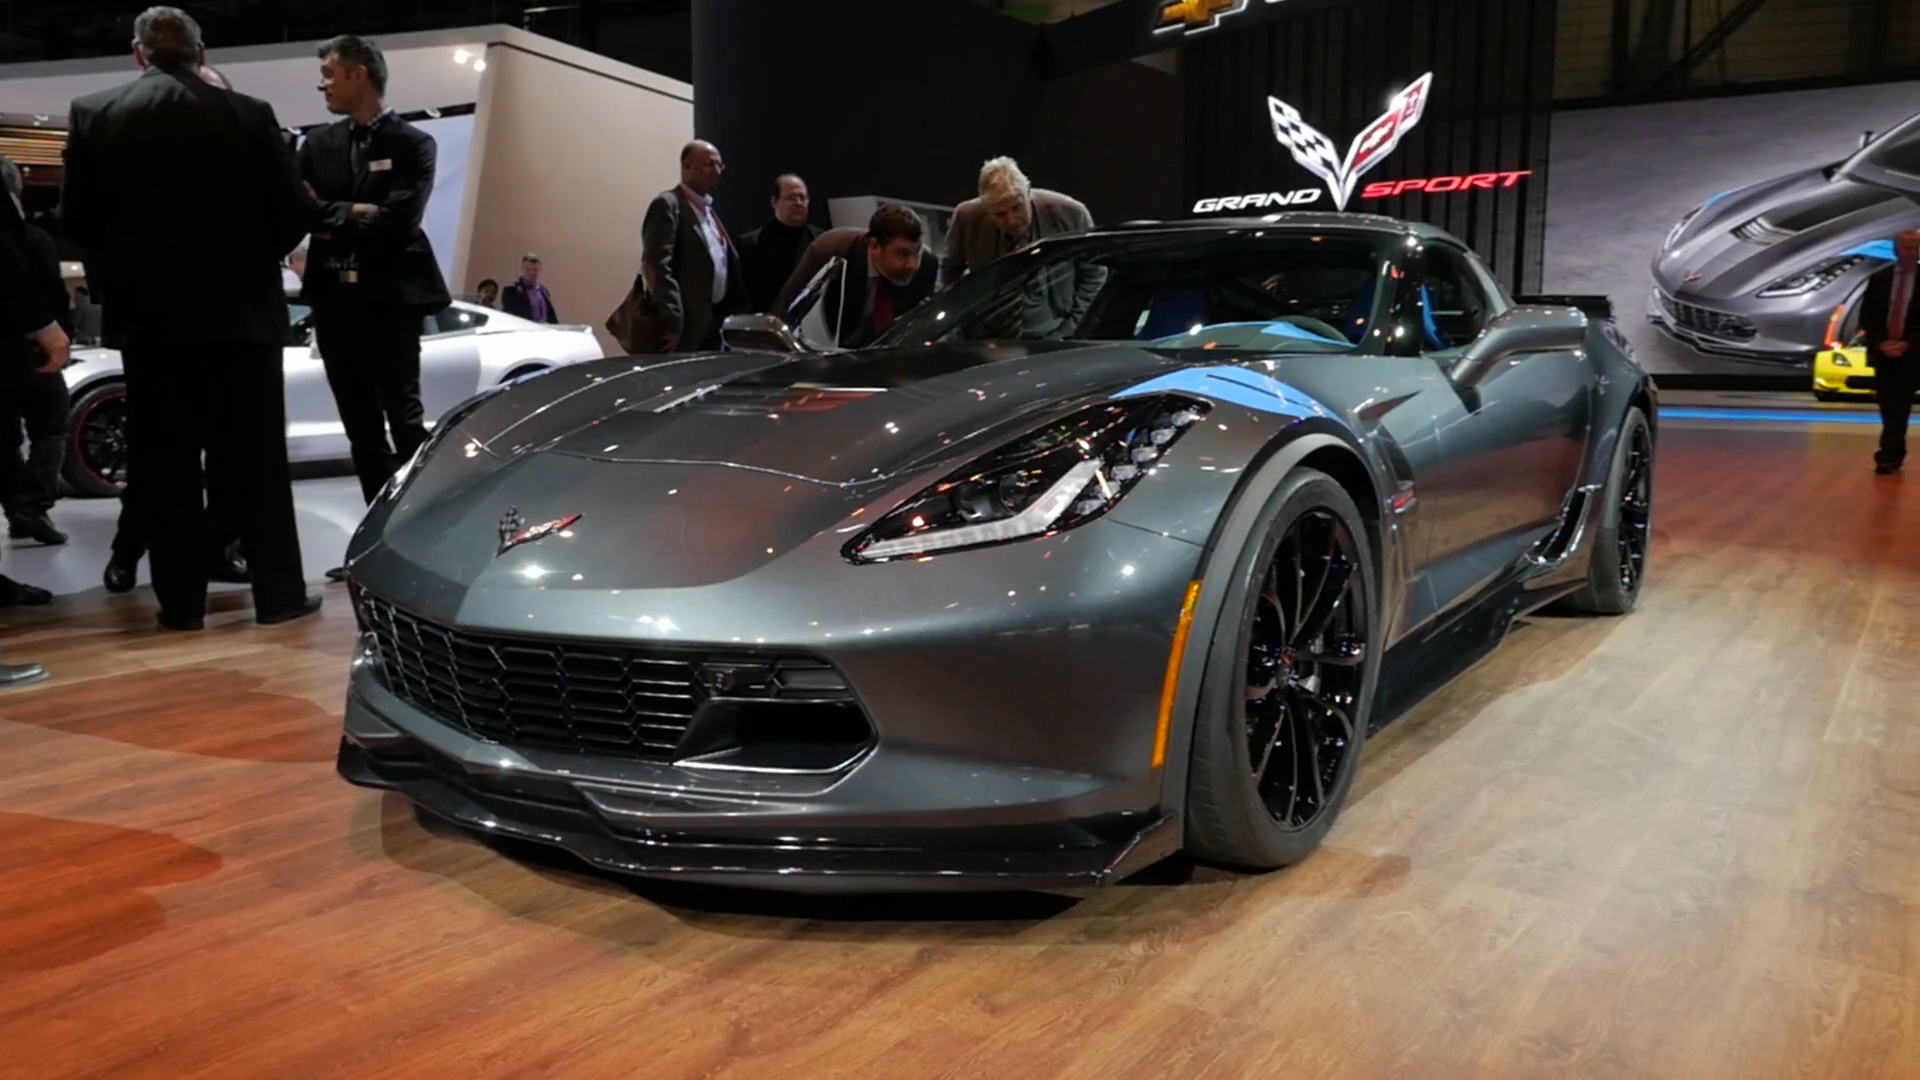 2017 Chevrolet Corvette Grand Sport 2016 Geneva Motor Show Beauty Roll